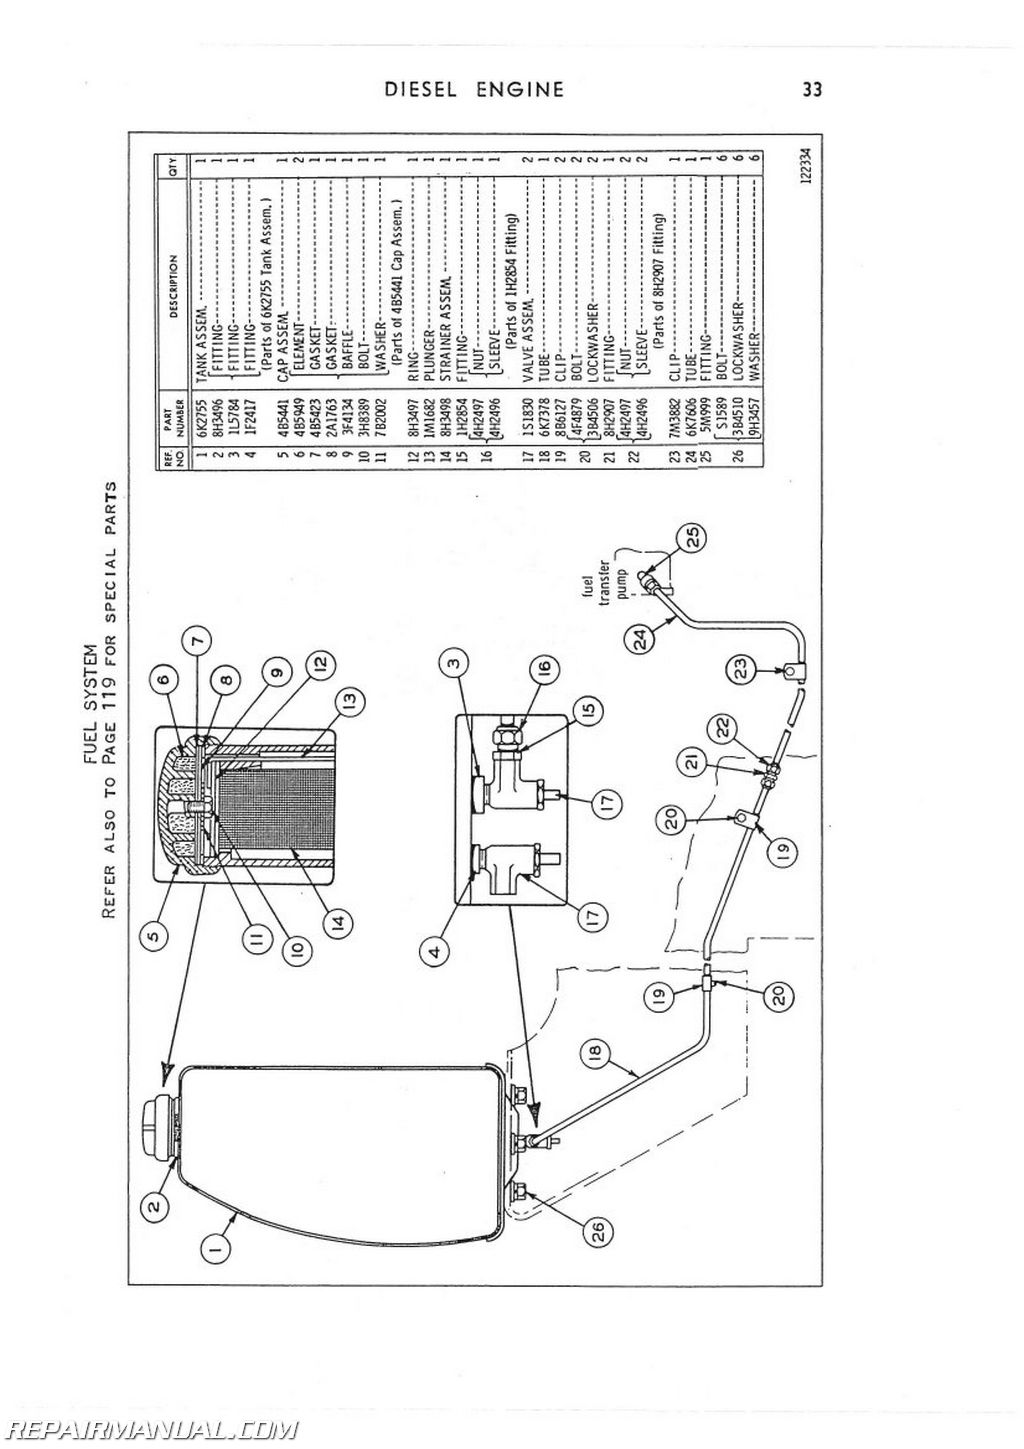 hight resolution of this 8 in downloadable cat diesel engine shop manual includes engine specifications cat manual asking price is any que our extensive products and